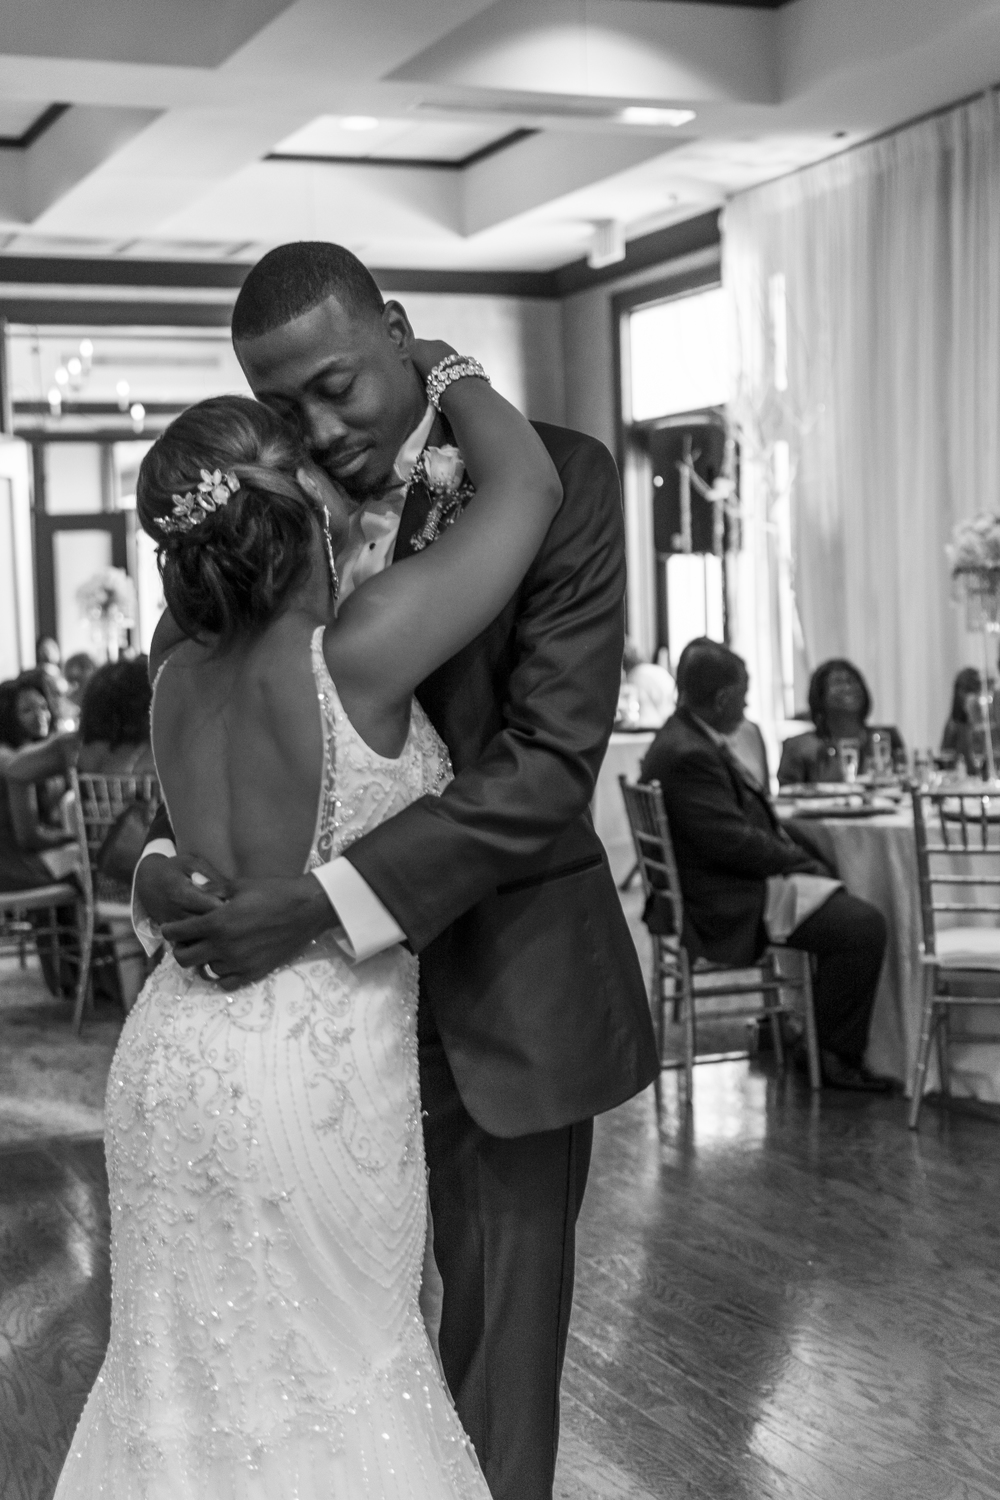 MOORE-BIVENS WEDDING 2015-185-2.jpg